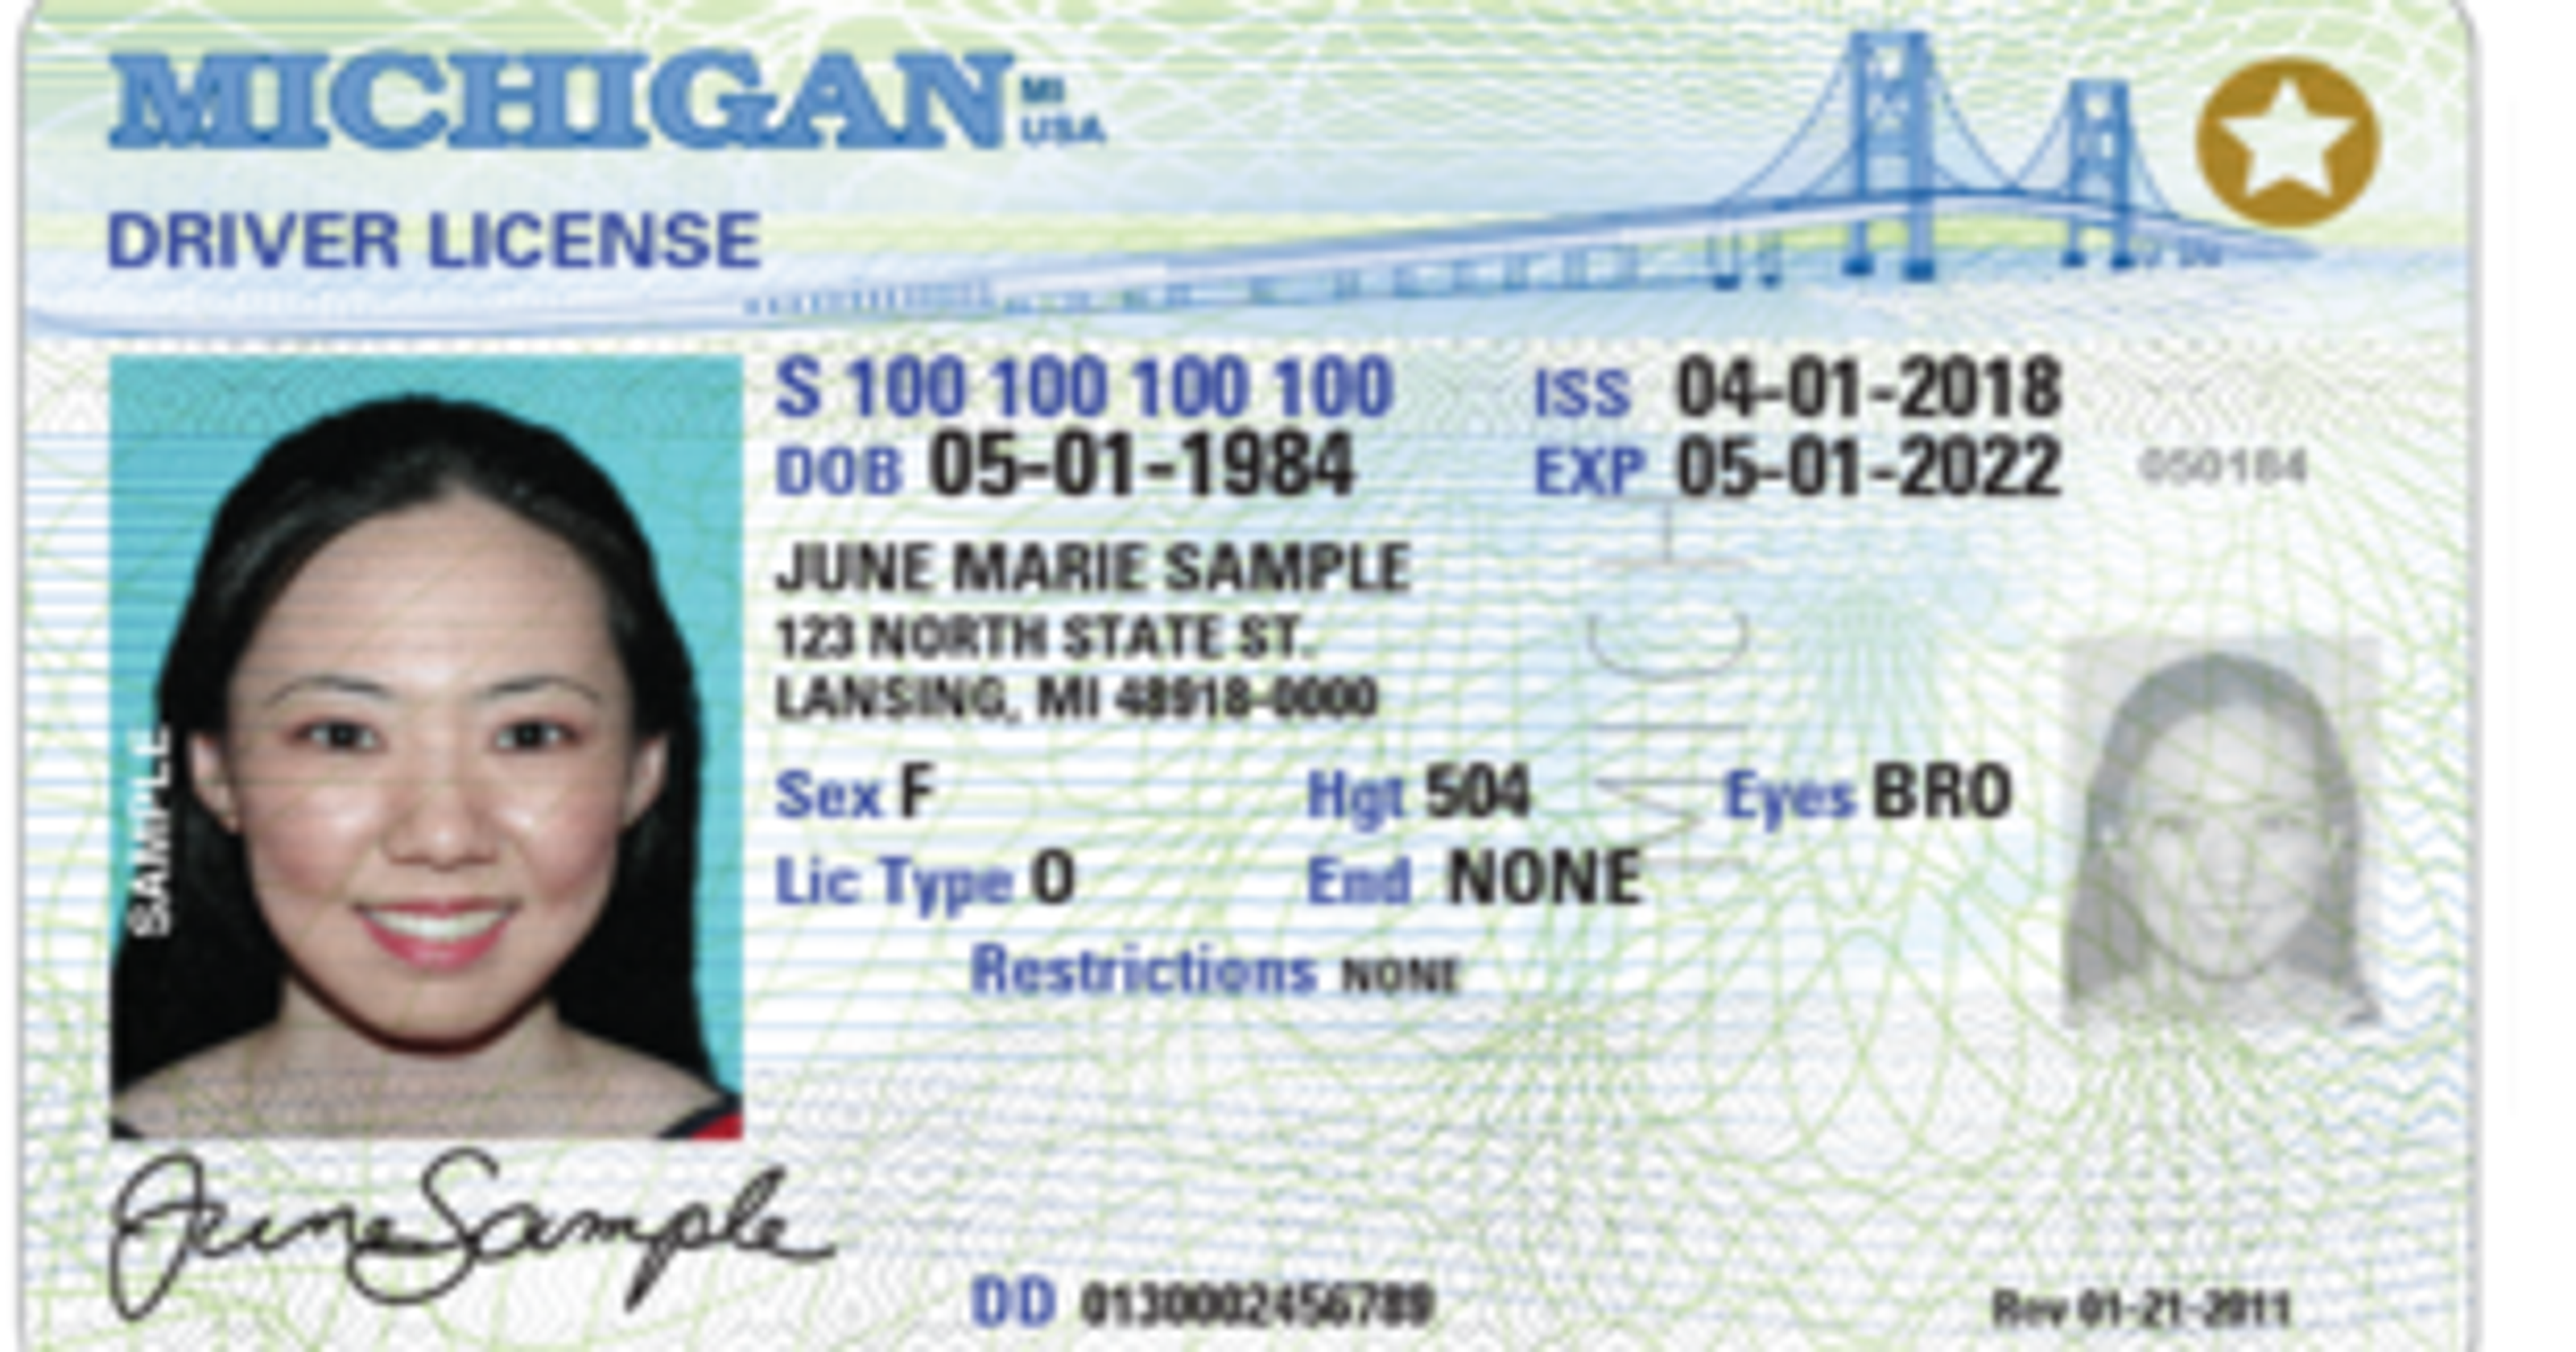 Ids Accepted To Will That New Issue Michigan Flights Domestic On Be